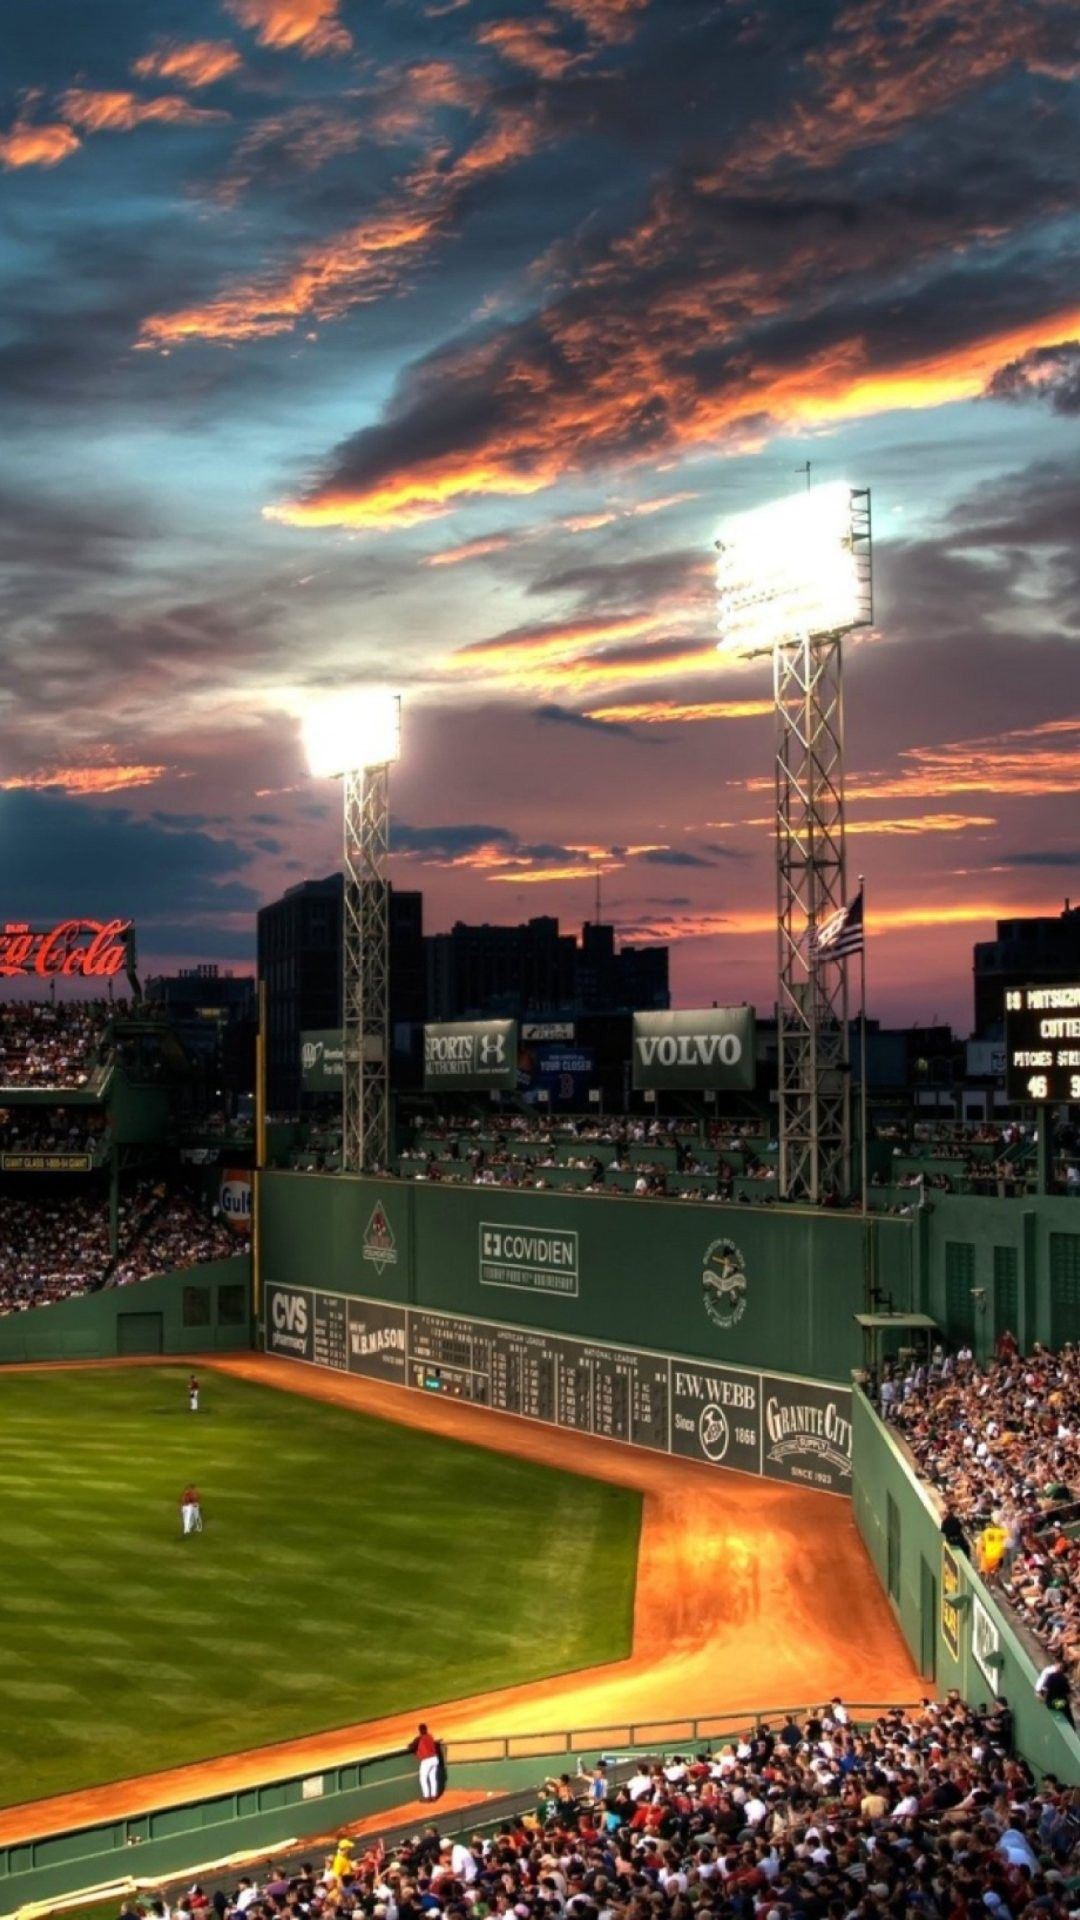 Baseball wallpapers best wallpapers hd wallpapers pinterest baseball wallpapers best wallpapers voltagebd Image collections